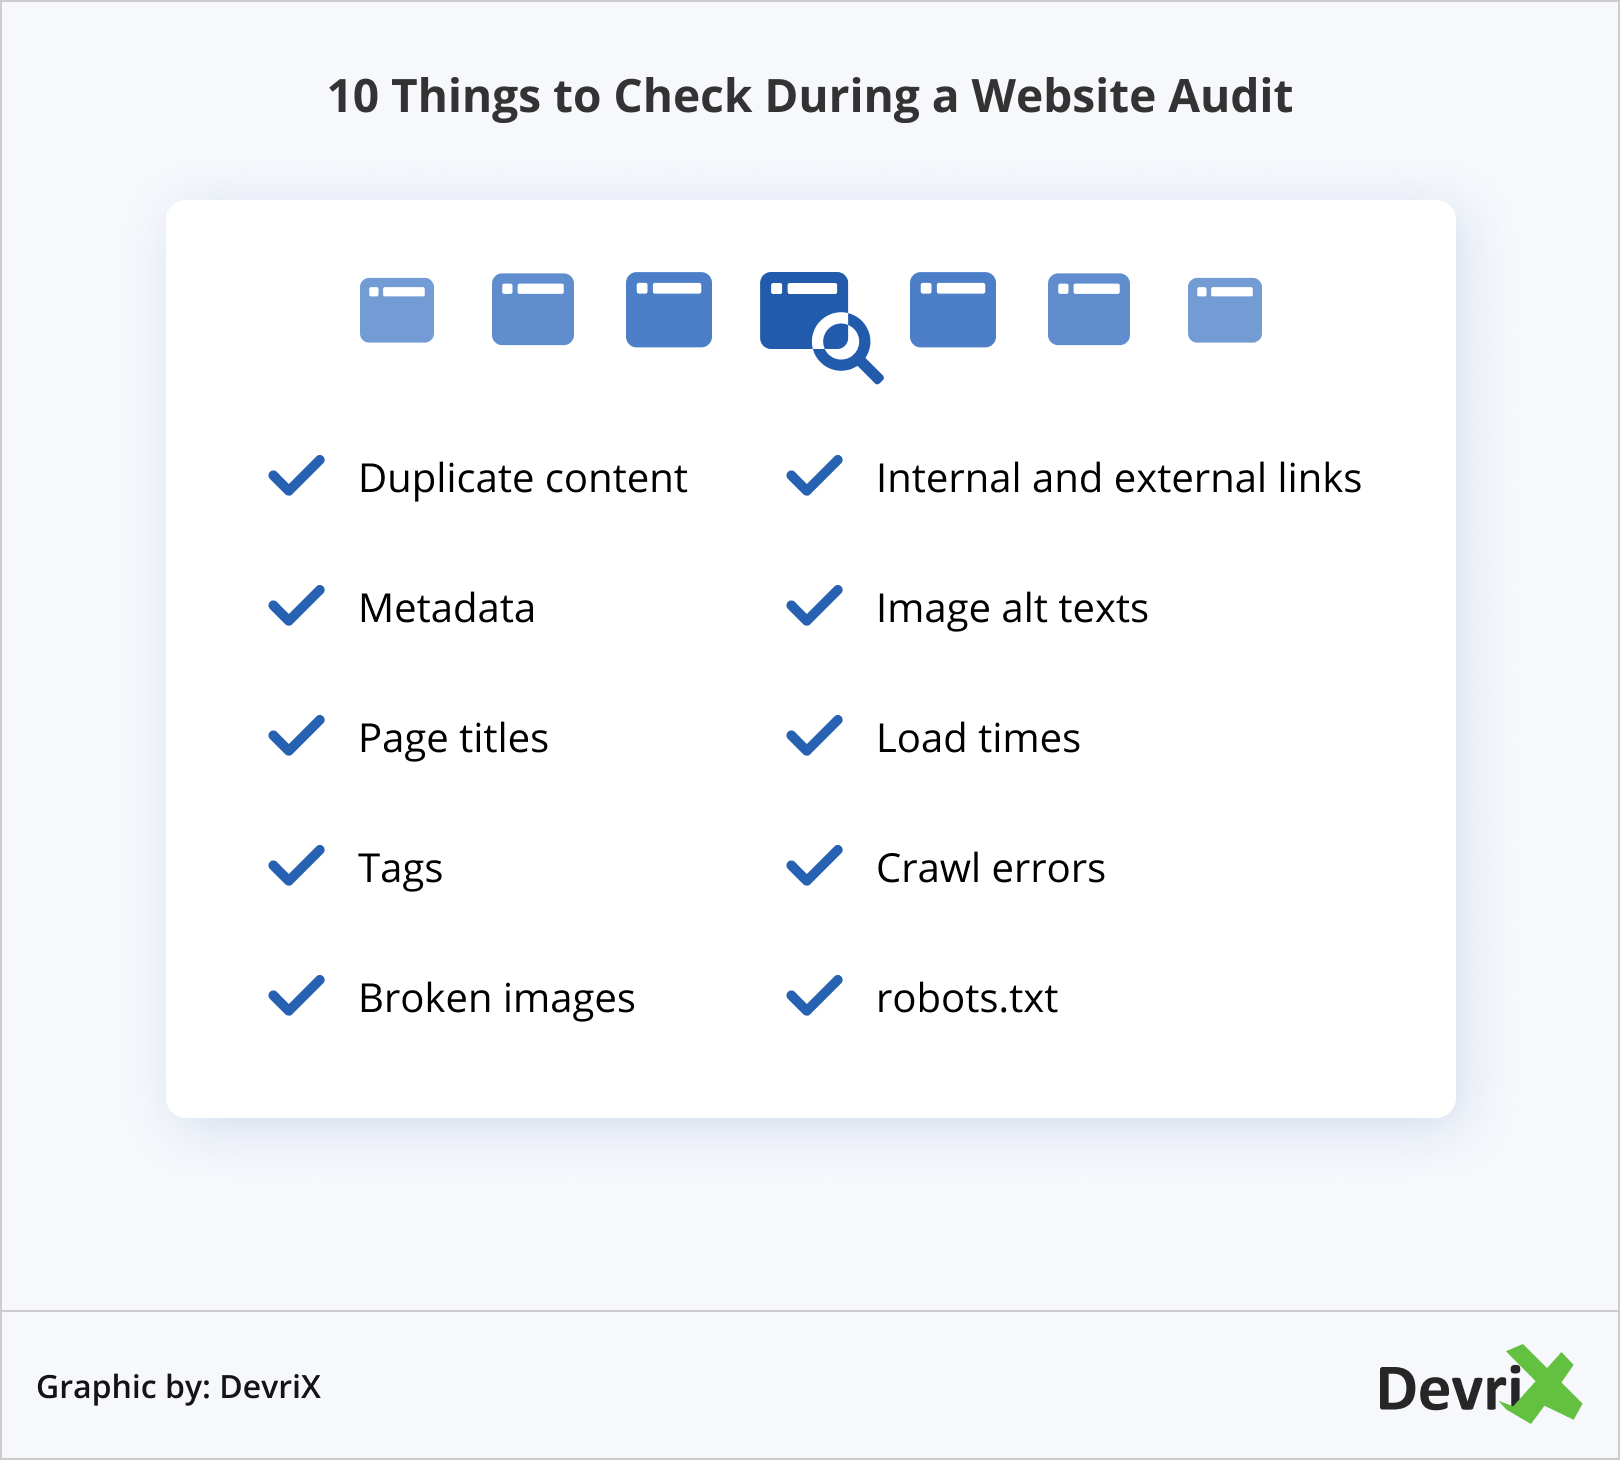 10 Things to Check During a Website Audit